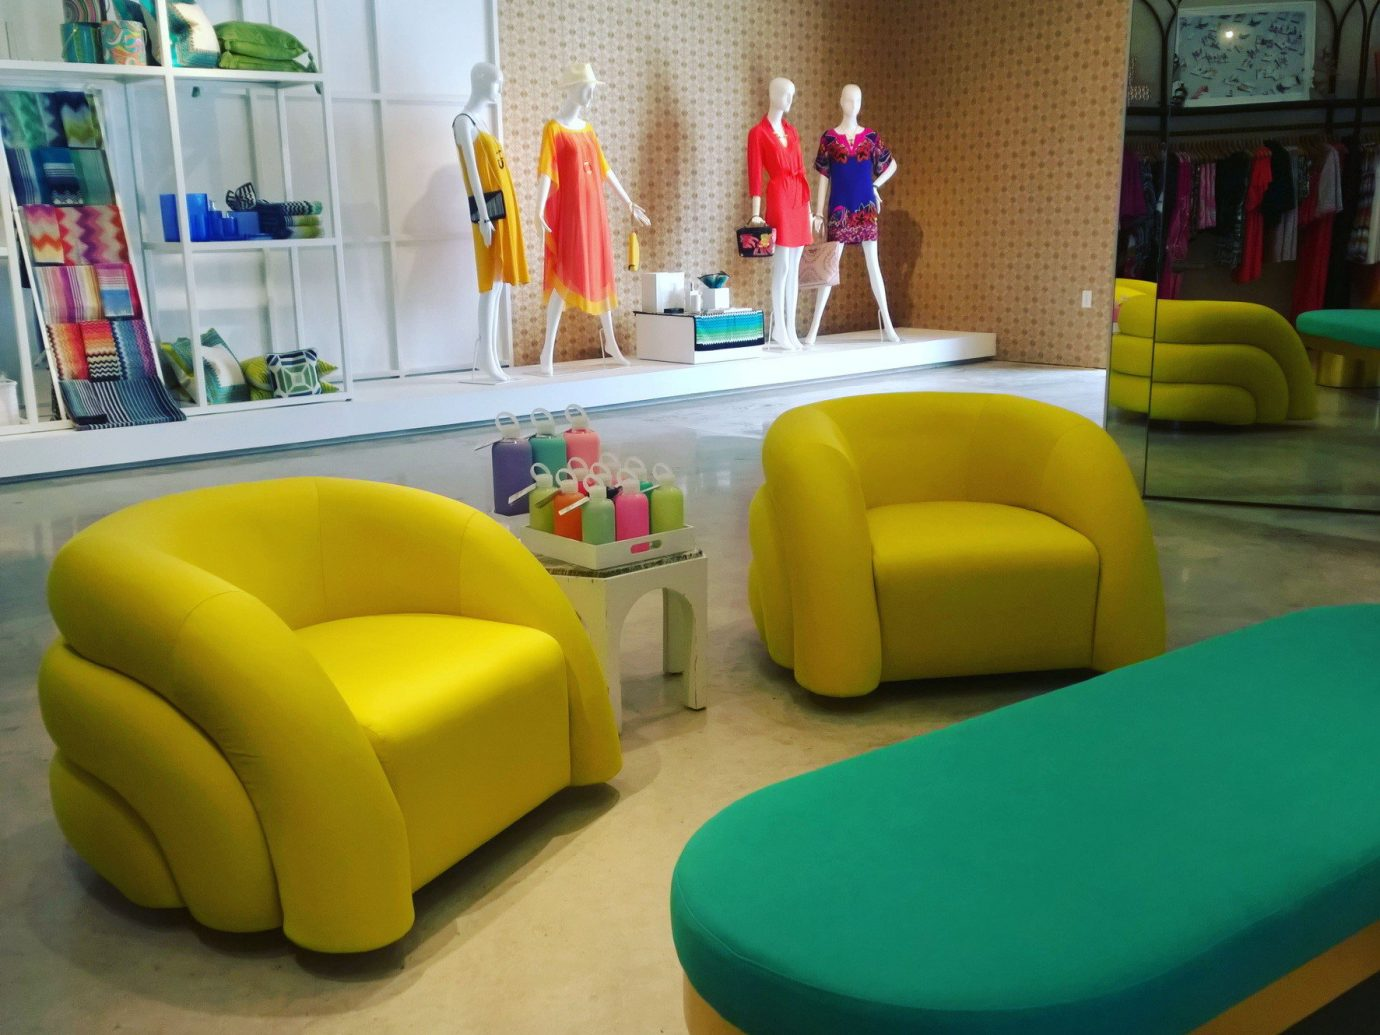 Trip Ideas color indoor leisure room furniture waiting room Play inflatable interior design living room chair couch Bedroom